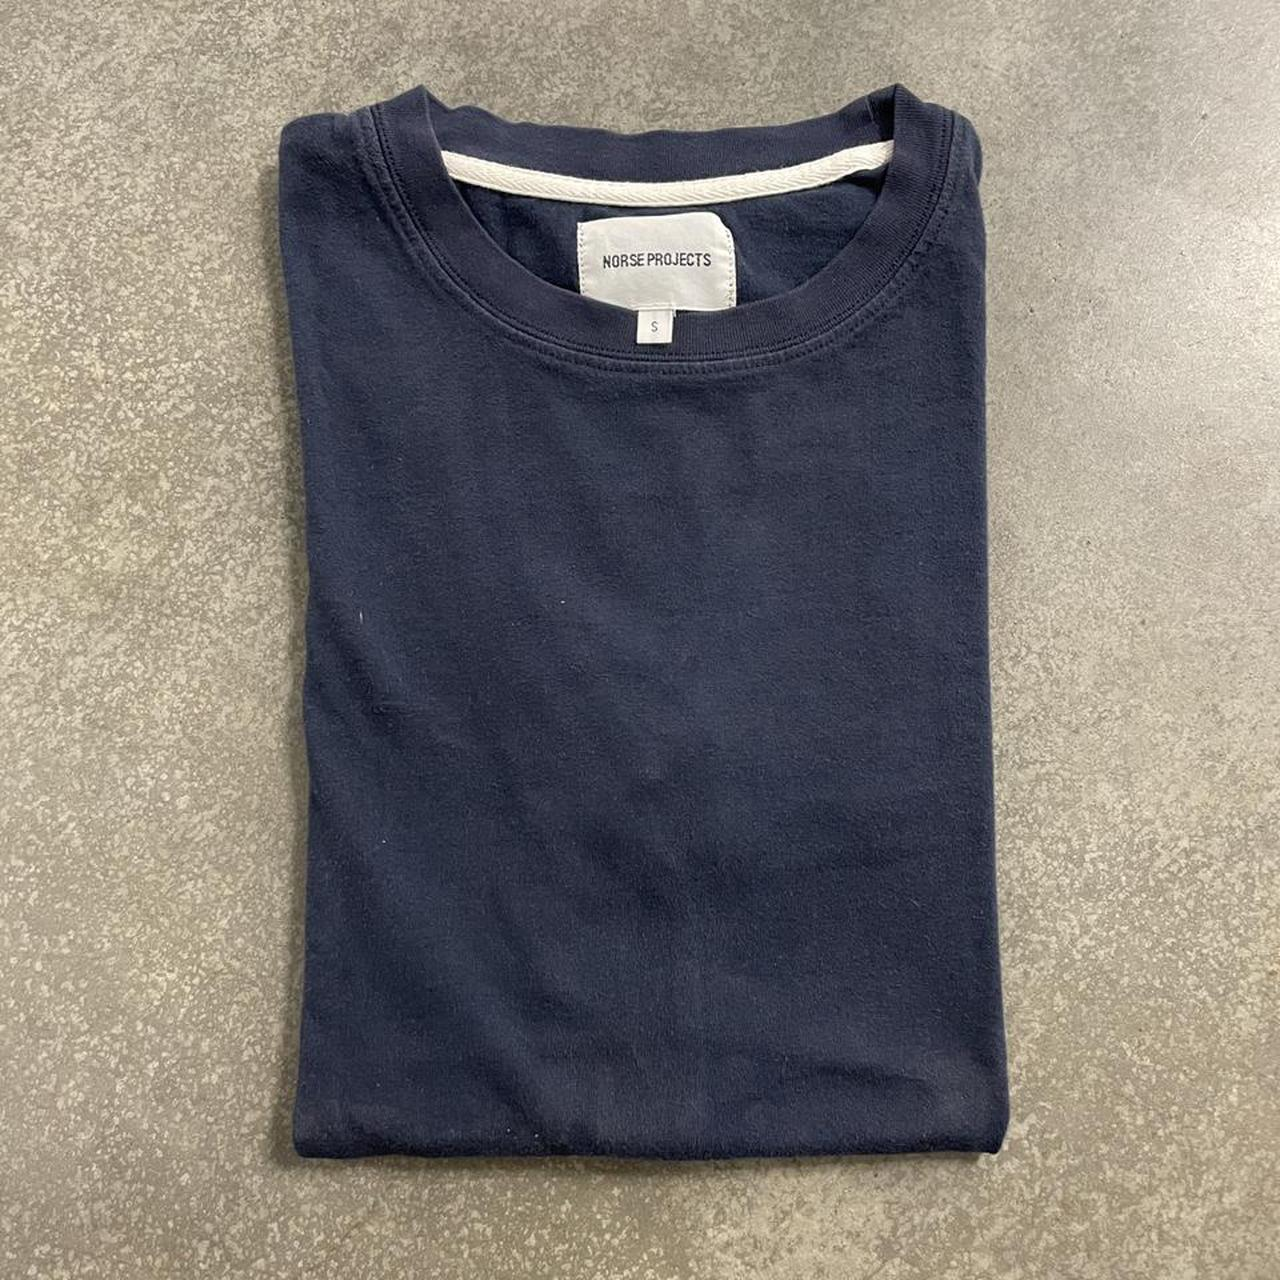 Product Image 1 - Norse Projects Niels Basic Shirt